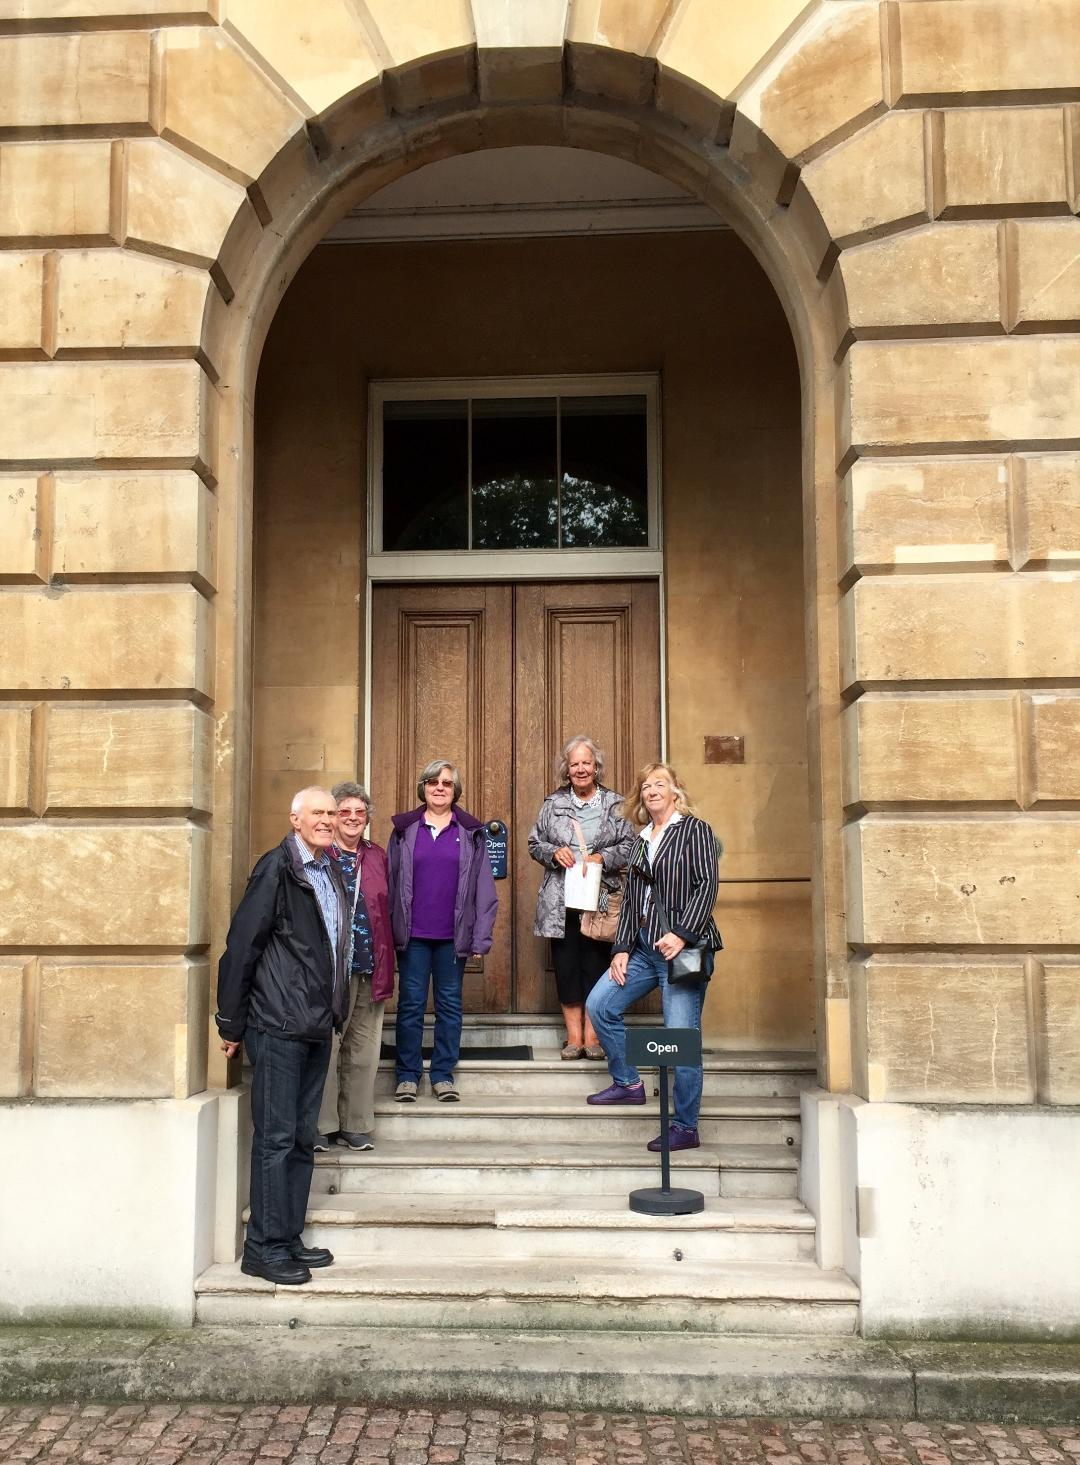 At Apsley House